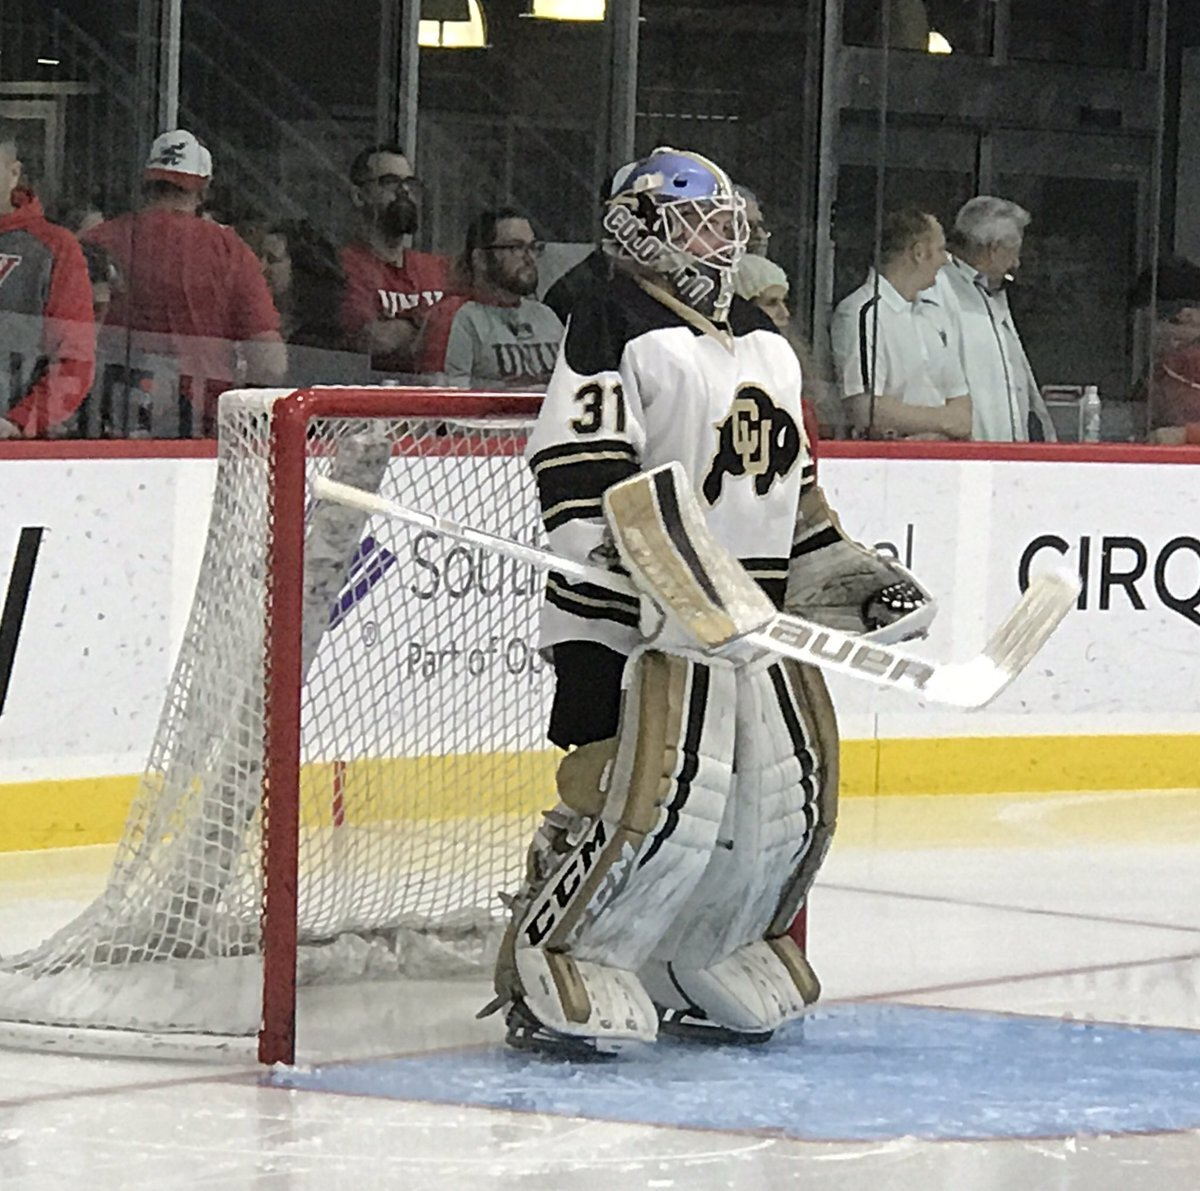 Colin Champine - Coach Champine is a lead goalie instructor with the MHH Goalie Club having been coaching with the club for the past two seasons after graduating from CU Boulder.